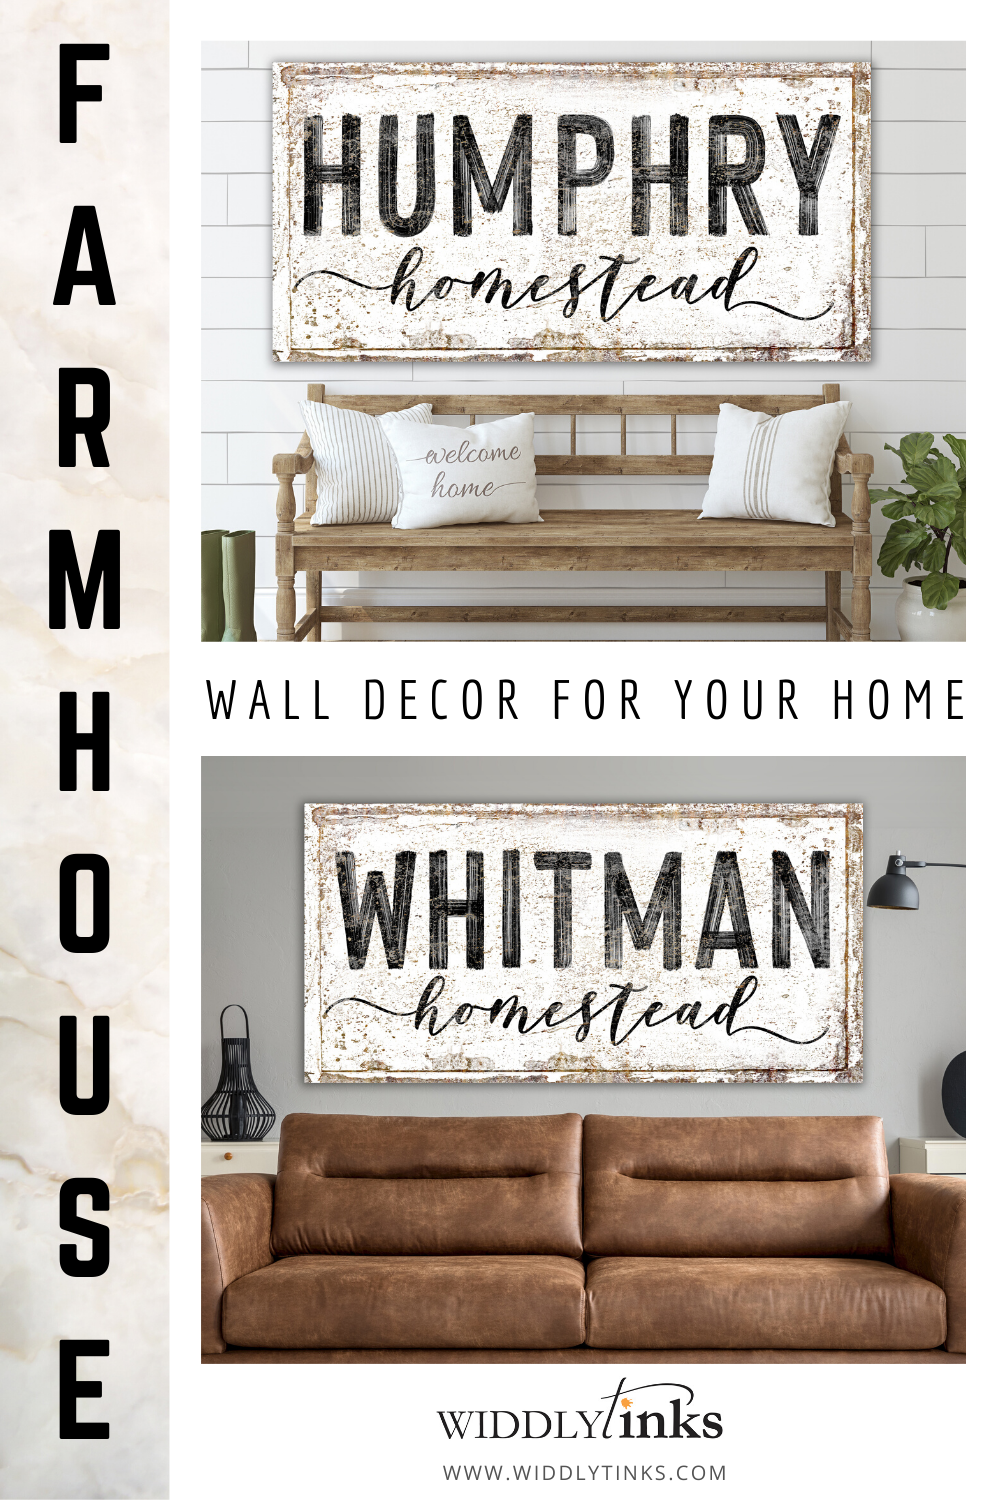 Add a touch of modern farmhouse charm to your walls with